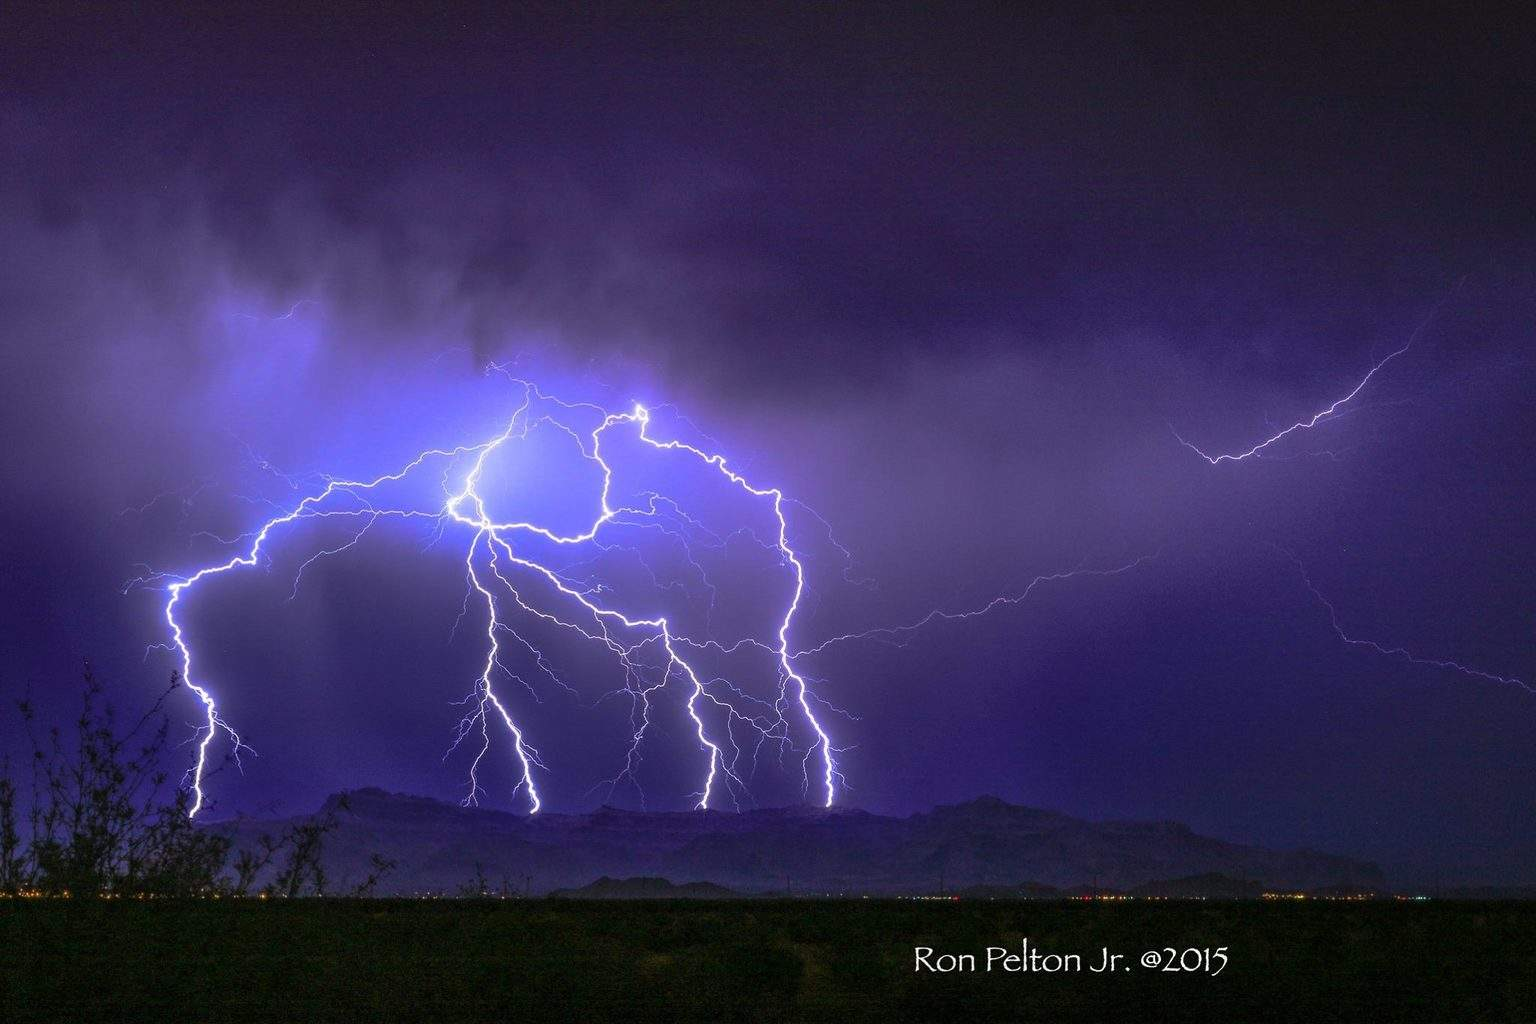 One killer of a night for lightning shooting in Apache Junction/San Tan Valley. Superstition Mountains getting hammered with CG'S